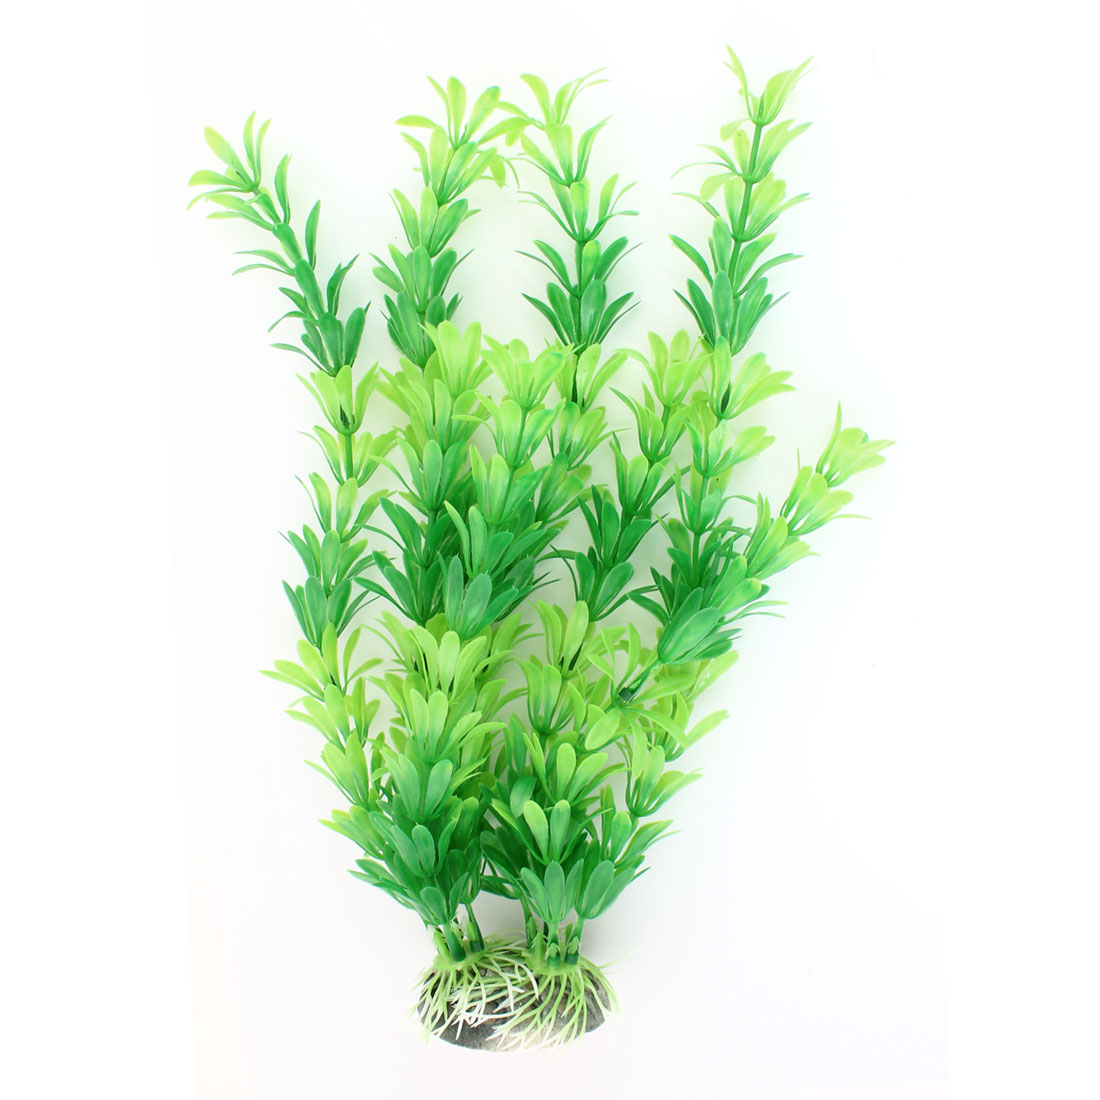 "Fish Tank Green Manmade Grass Underwater Plant Decor 11"" Height"